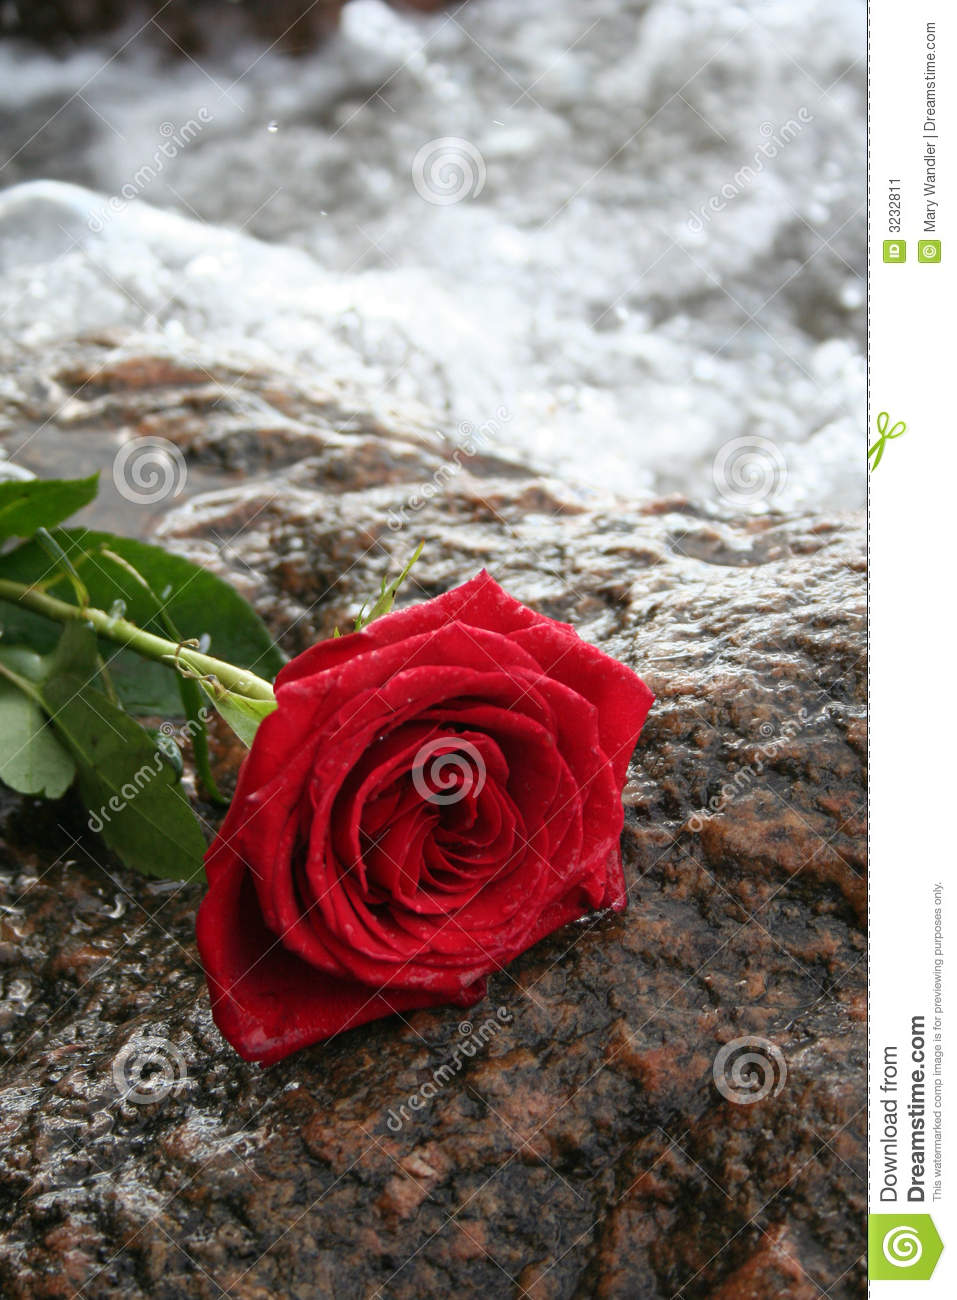 romantic red rose stock image  image, Beautiful flower